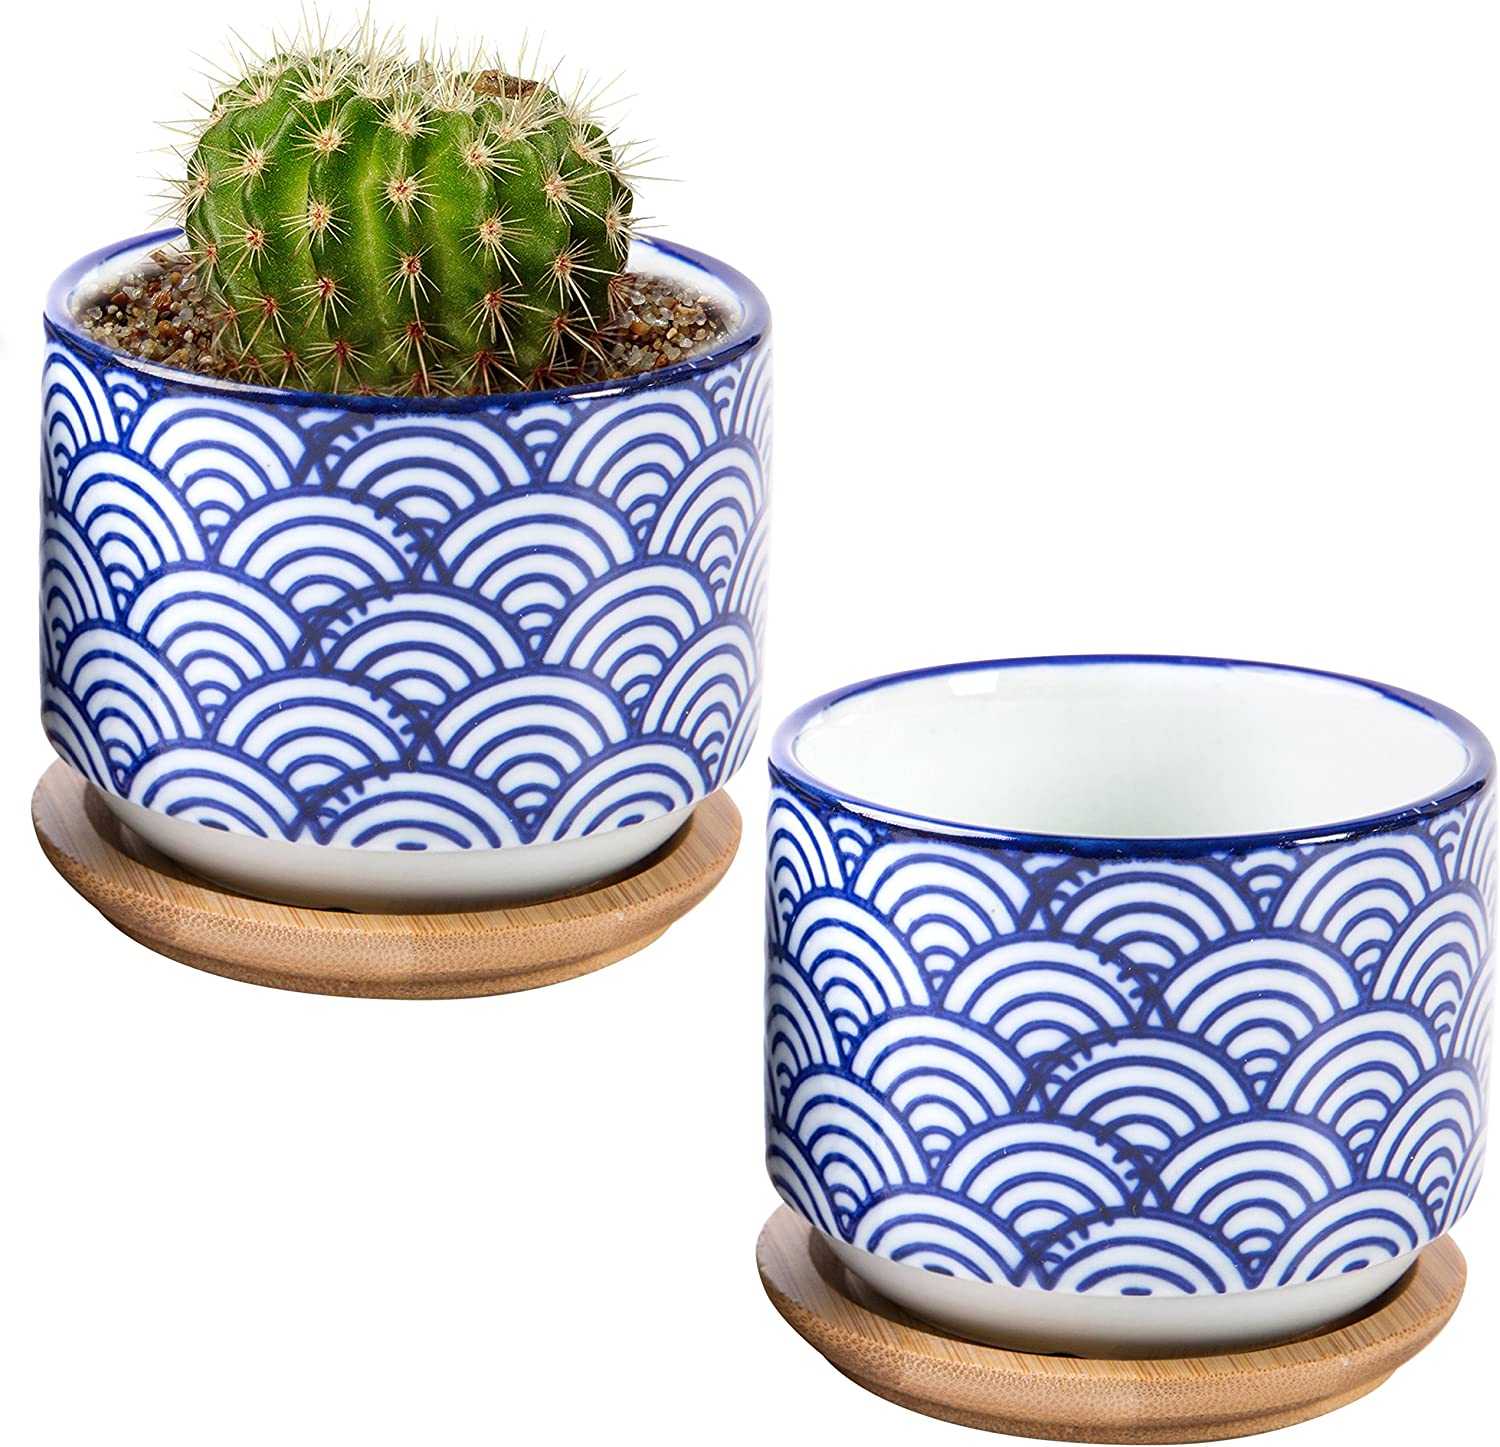 3-inch Japanese Style Wave White and Blue Ceramic Succulent Planter Pots with Bamboo Drip Tray, Set of 2